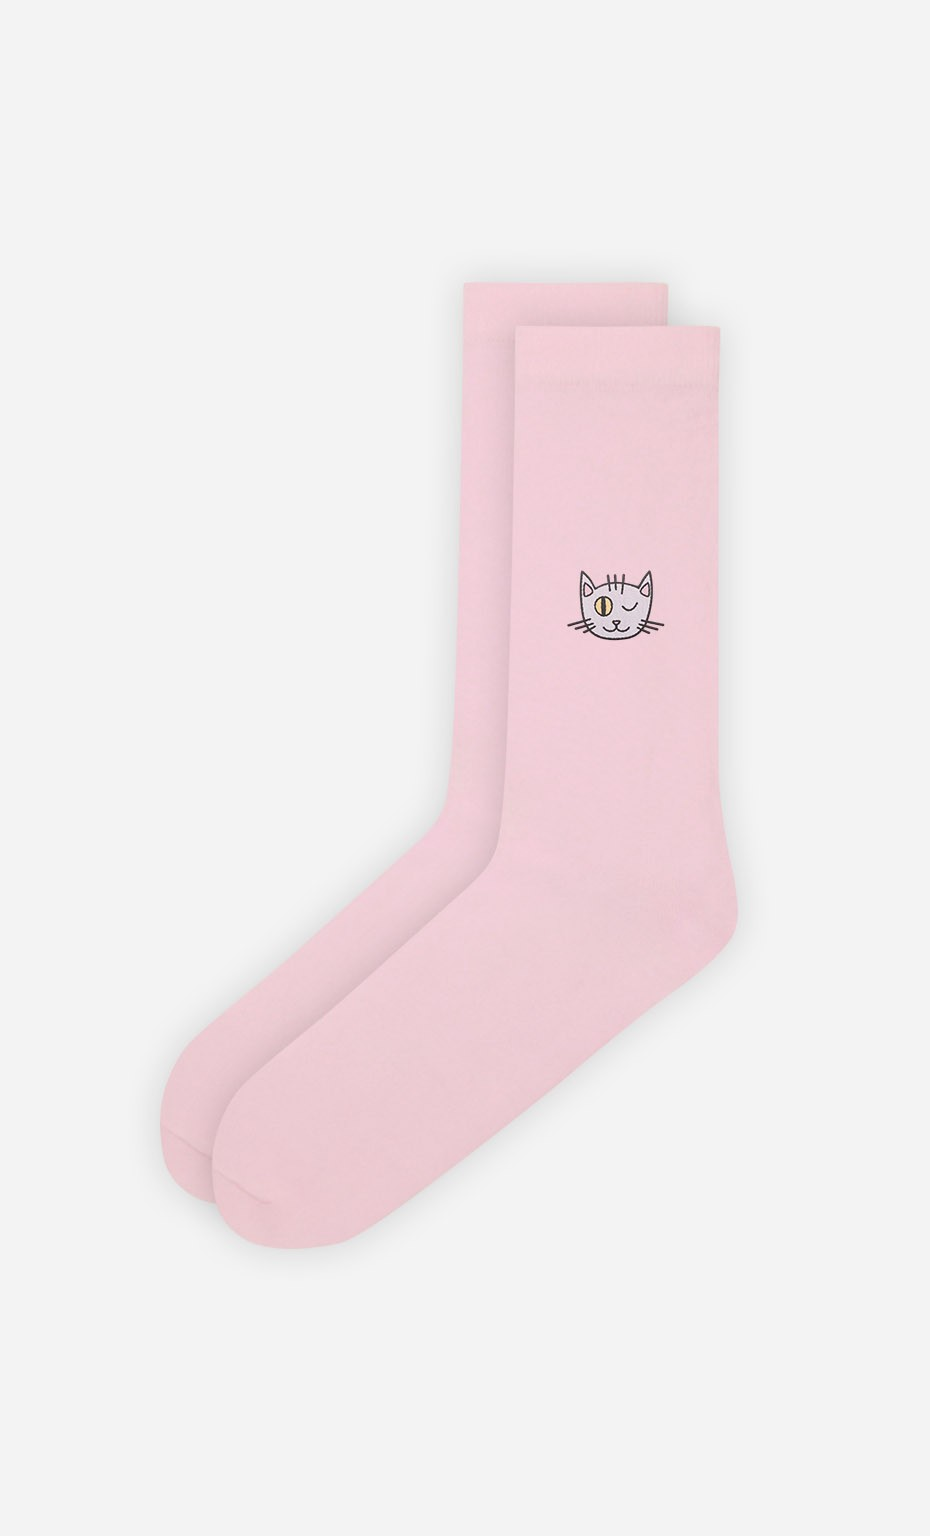 Chaussettes Roses Wink Wink